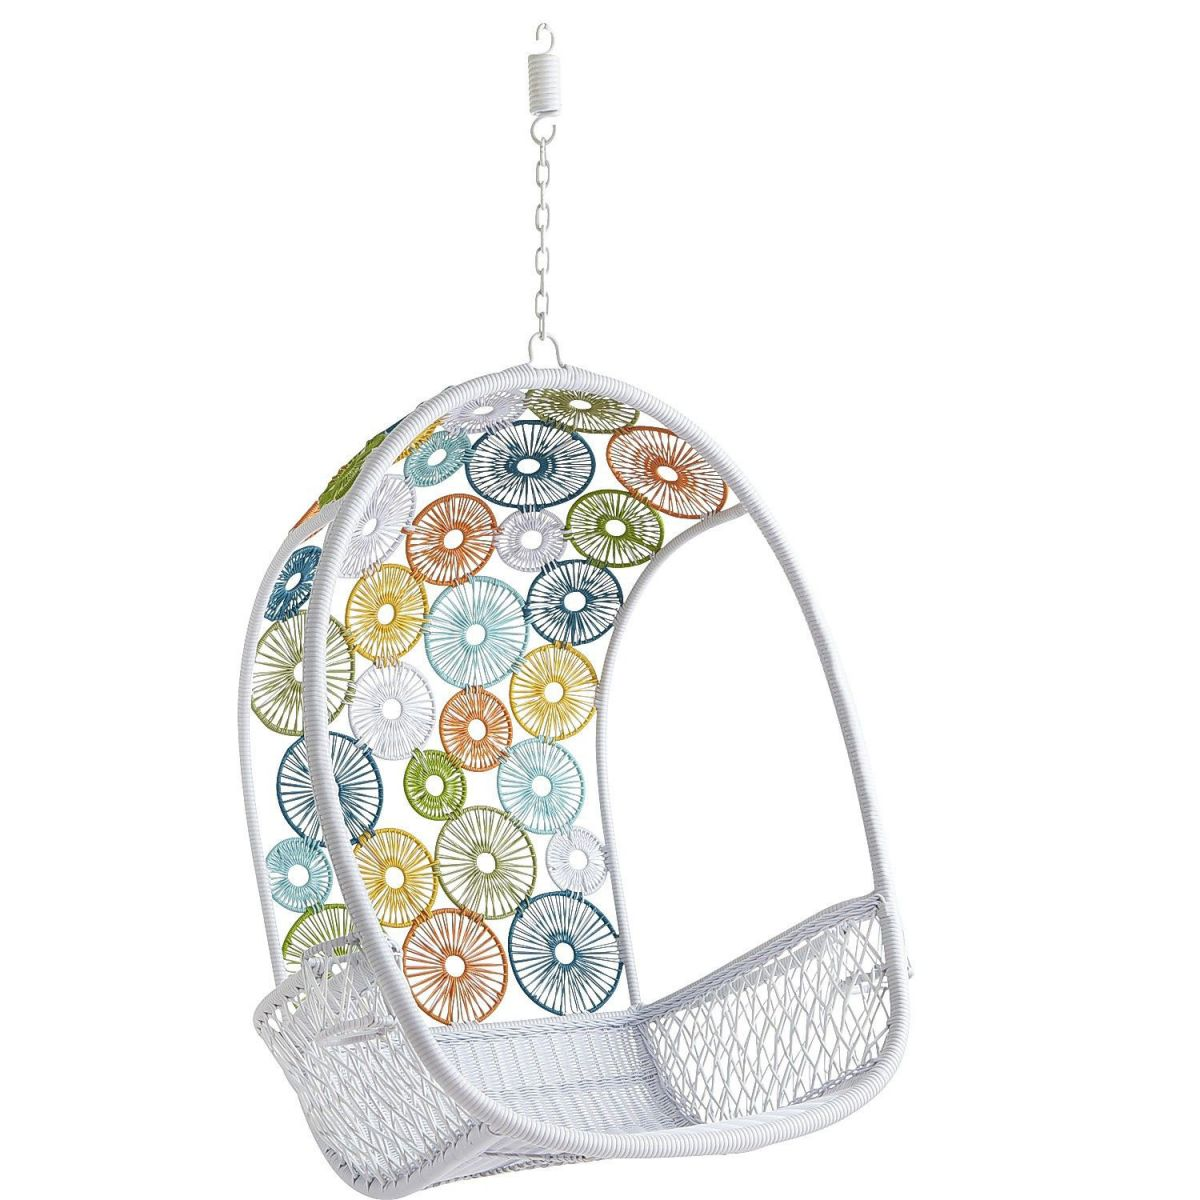 Kids Hanging Chair 10 Coolest Hanging Chairs For Kids Homesfeed